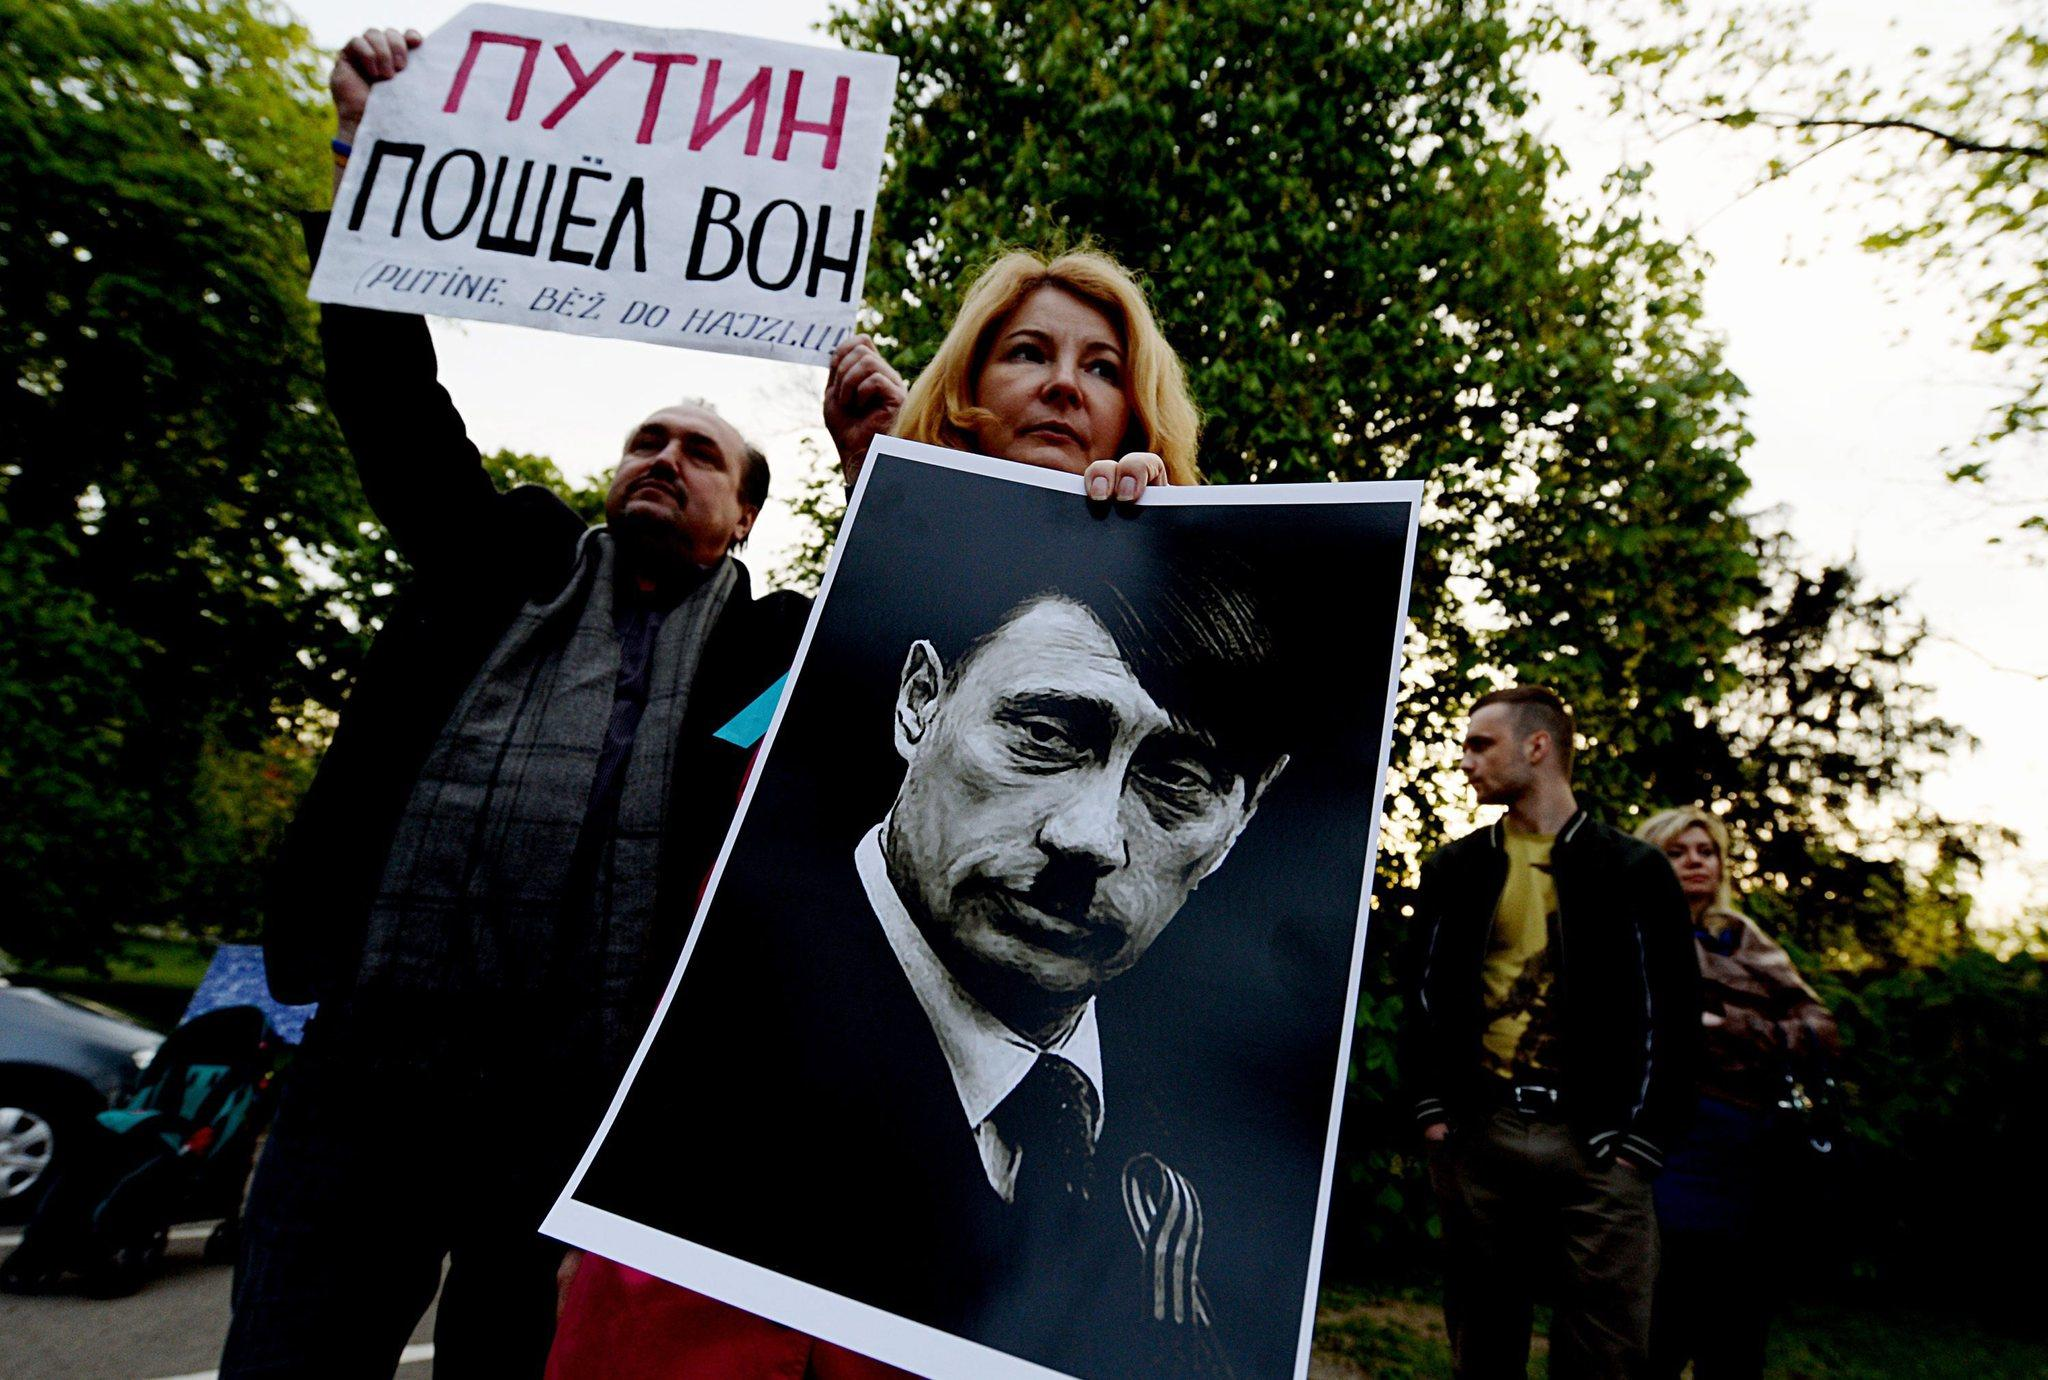 Protesters in the Czech Republic compare Vladimir Putin to Hitler in objecting to Russia's takeover of Crimea.